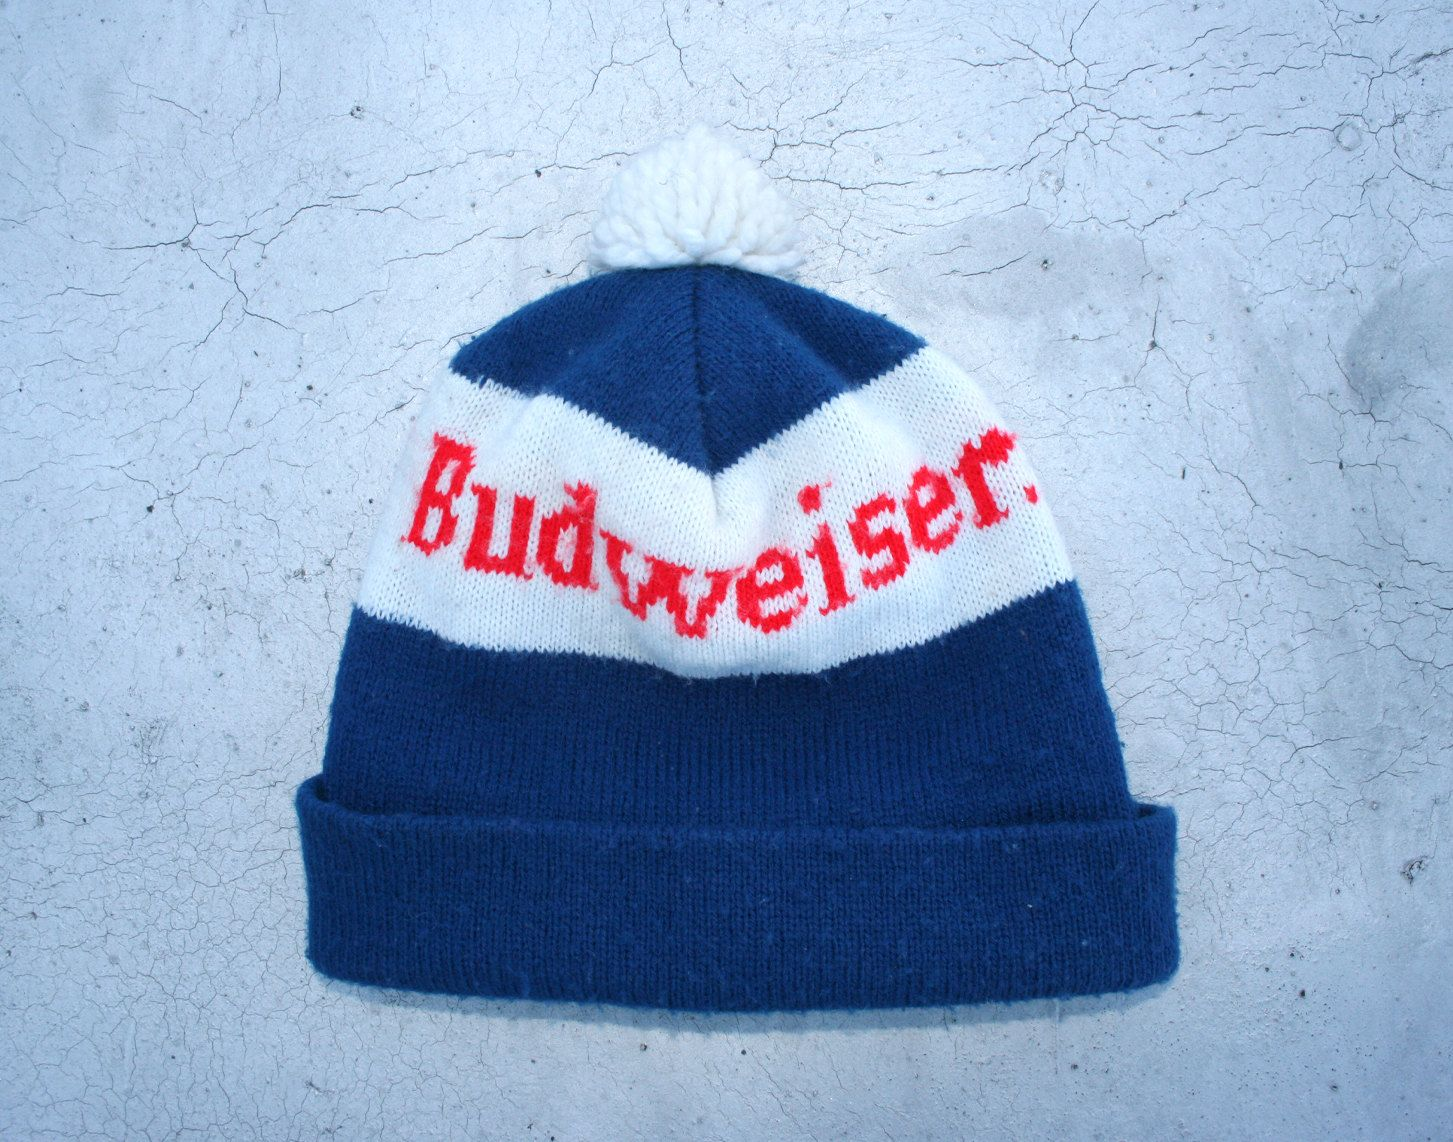 Vintage Budweiser Ski Cap Beanie Hat   1980s Novelty Beer Rock And Roll  Party Woven Knit Hat   Holiday Gift Stocking Stuffer   Size S-M 1ba059a7f8f7